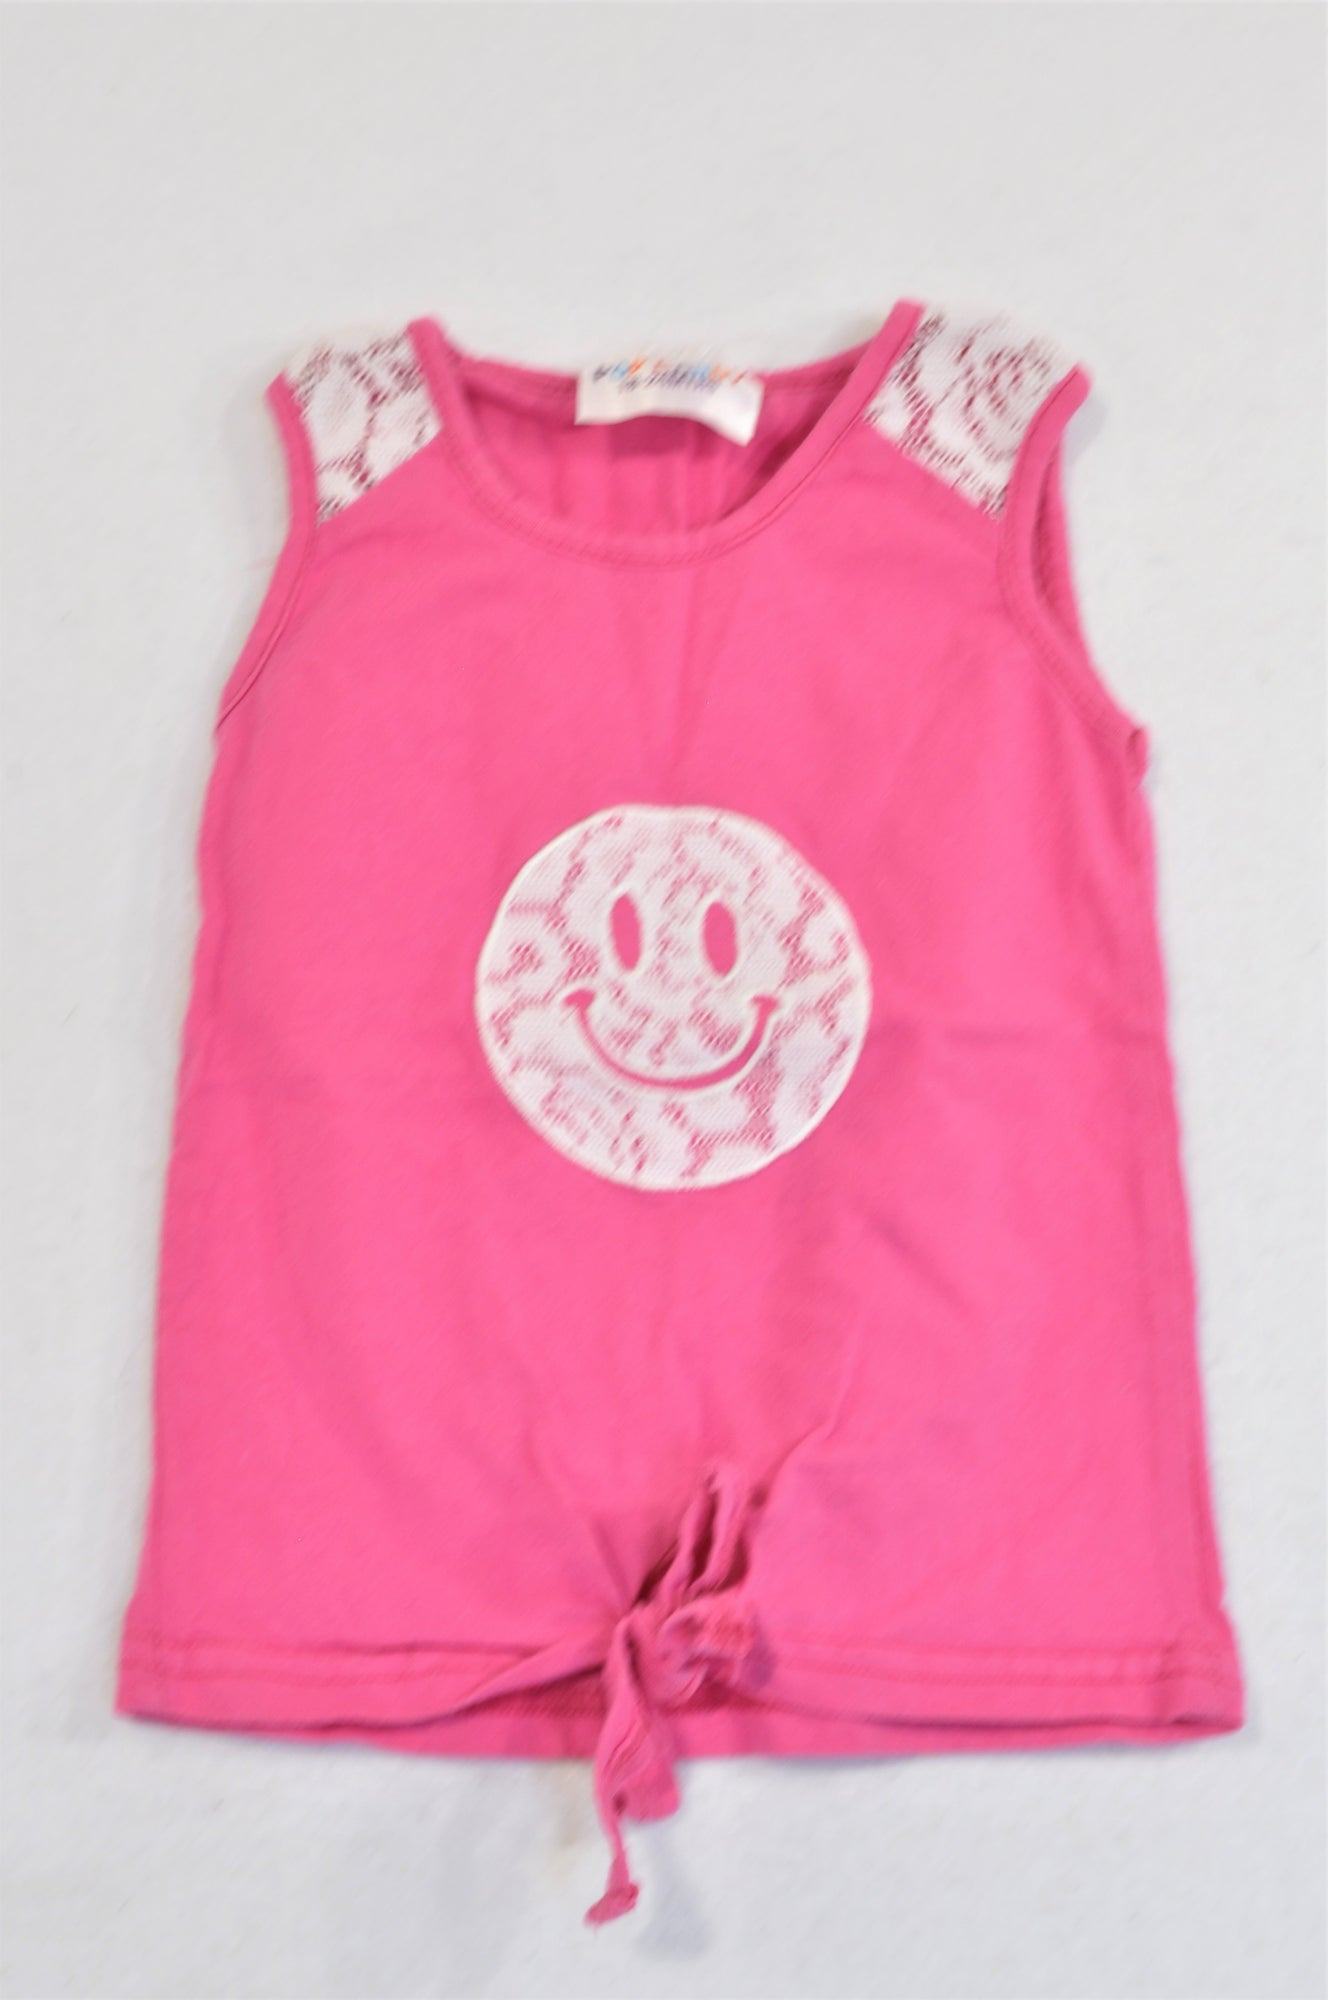 Pop Candy Pink Lace Inset Smiley T-shirt Girls 18-24 months